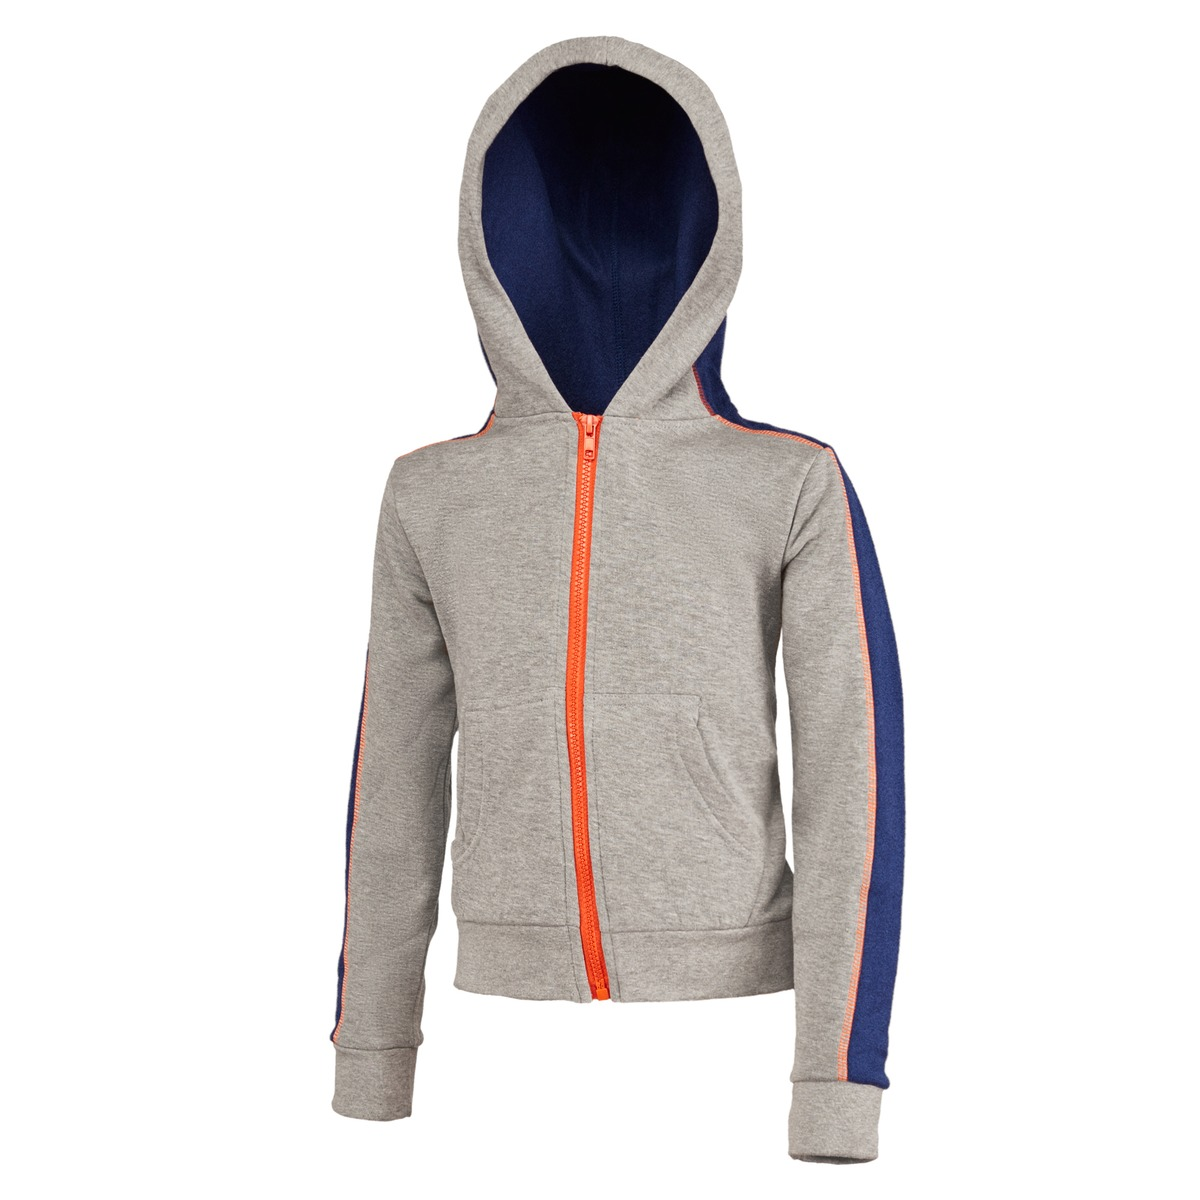 1fc9e44e Find hoodie in grey. Shop every store on the internet via PricePi.com